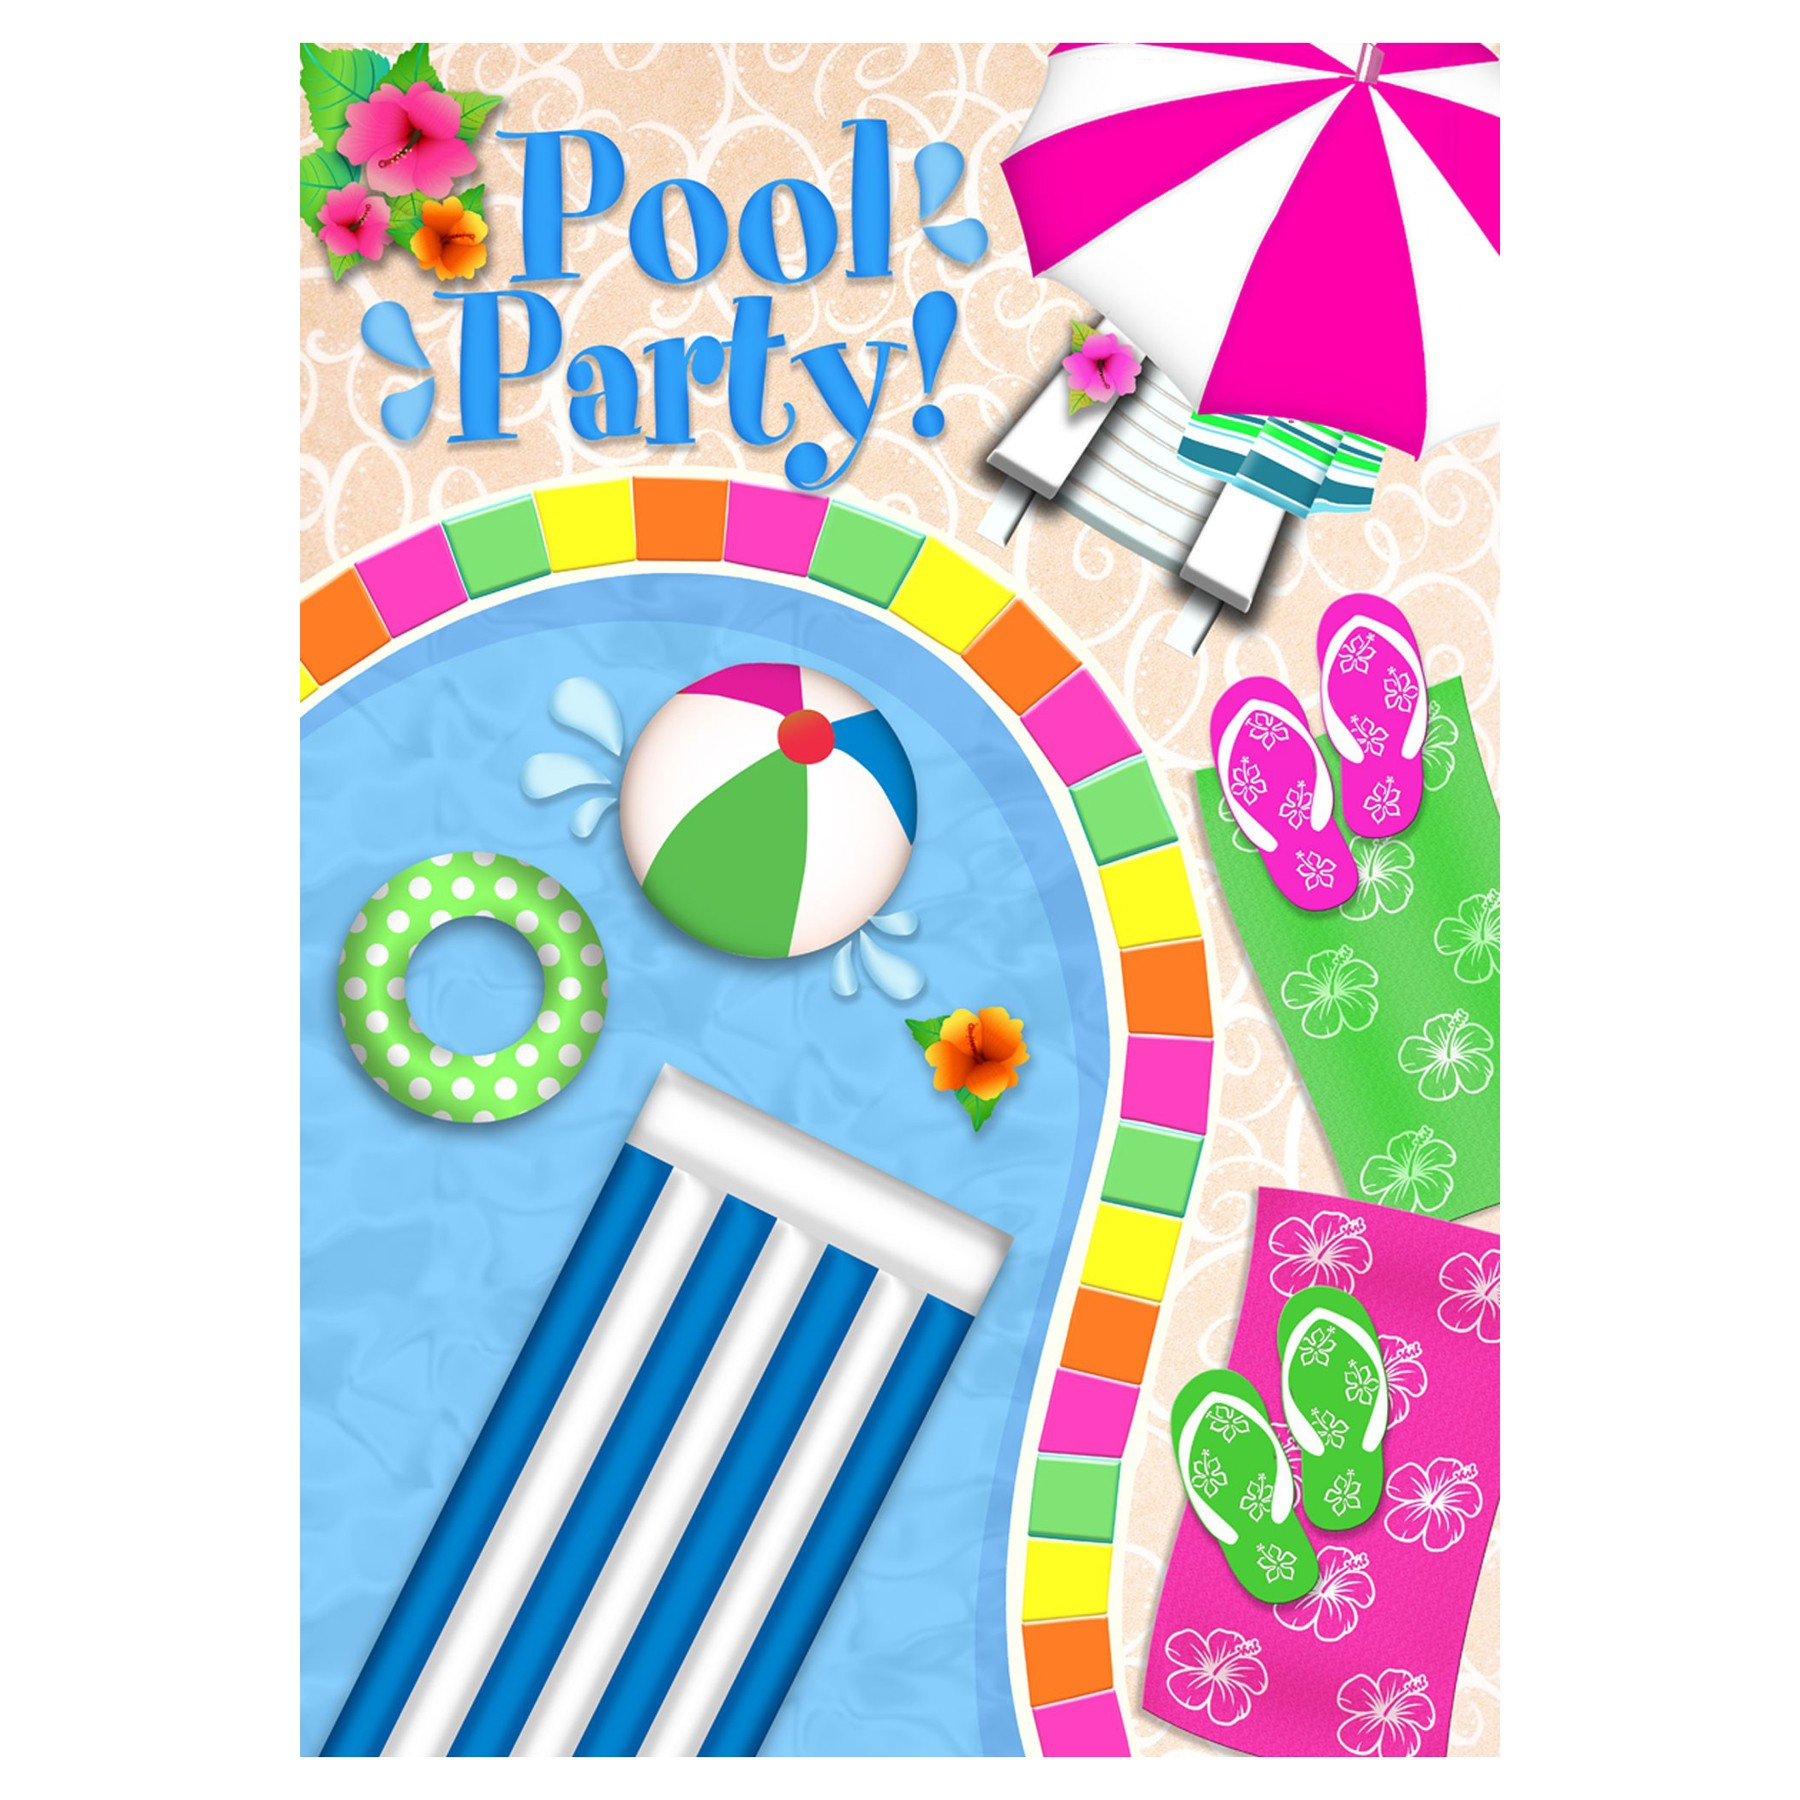 1800x1800 Pools Free Downloads Clipart